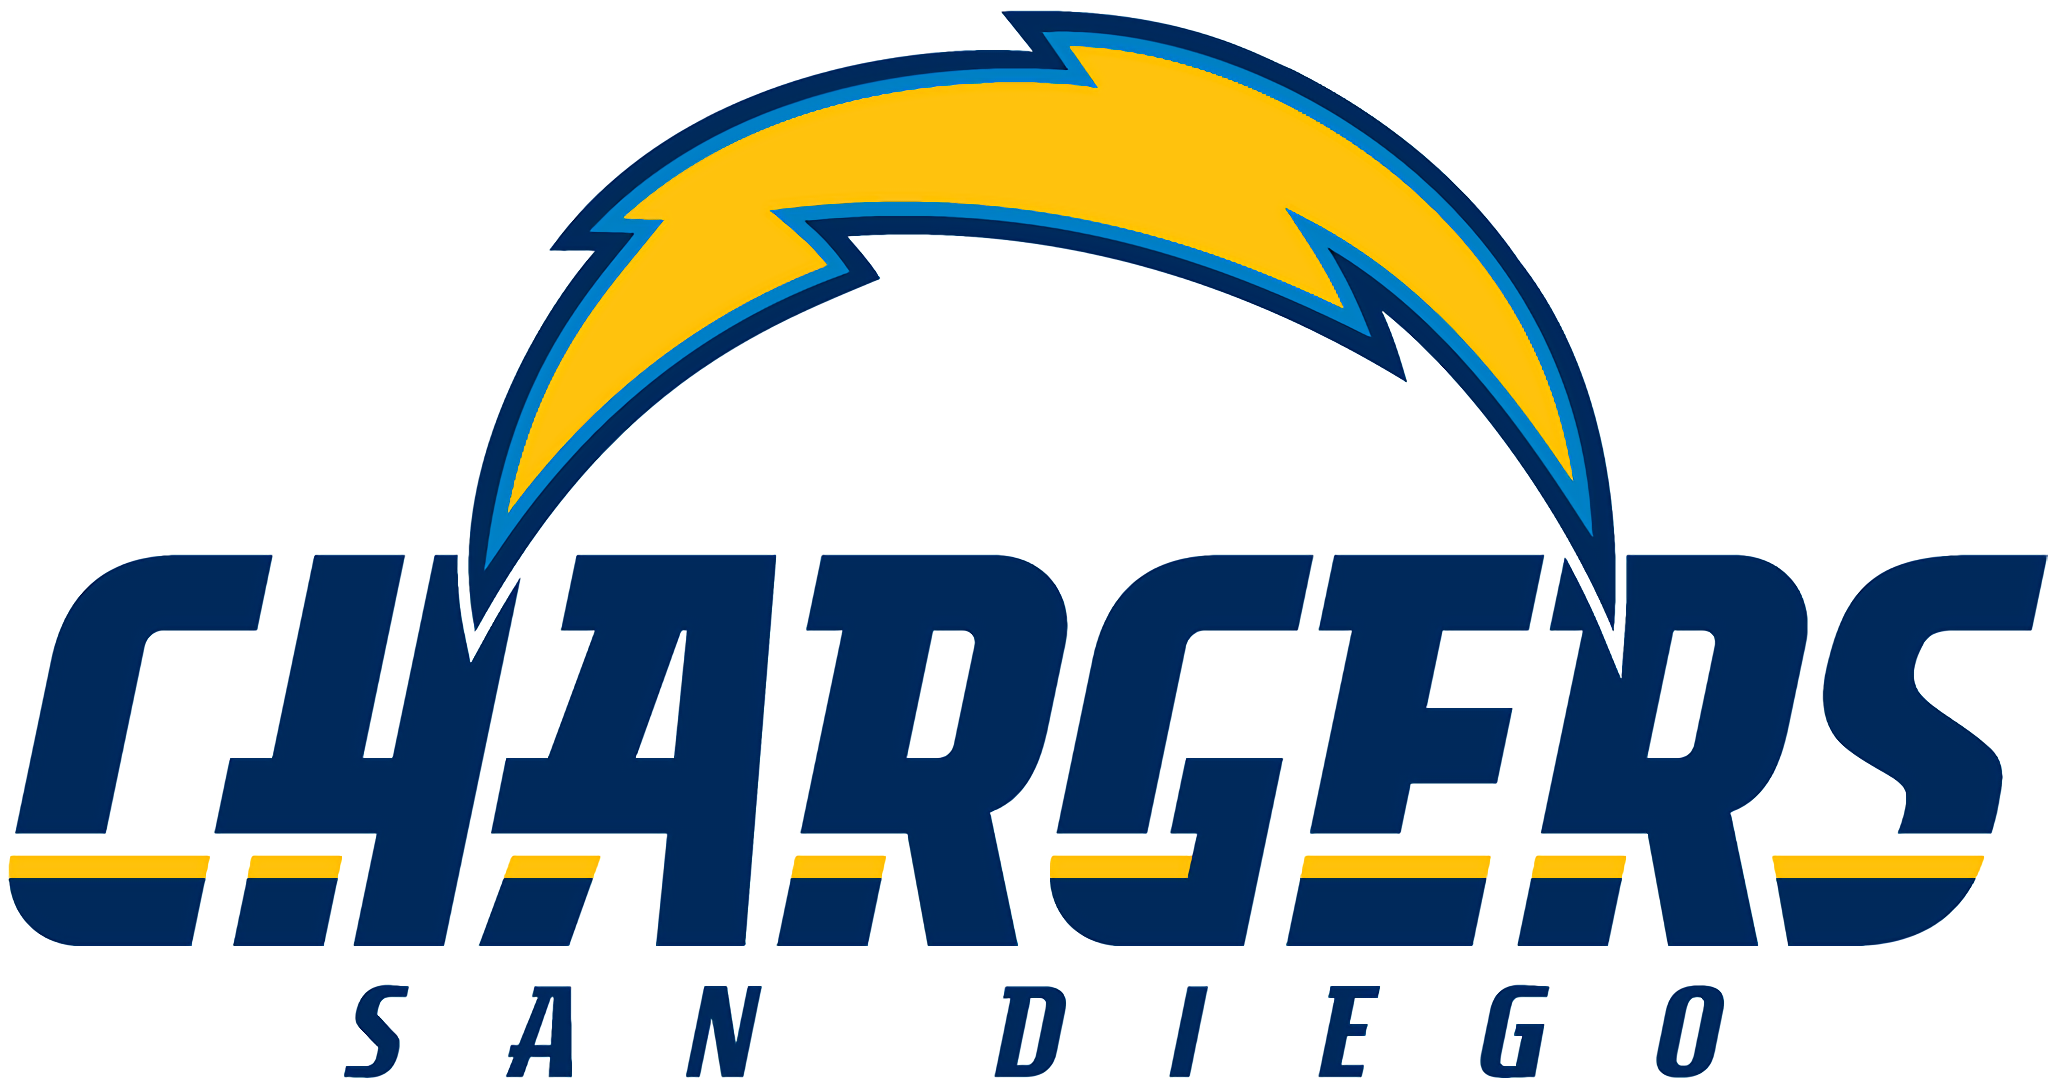 45 Los Angeles Chargers Hd Wallpapers Background Images